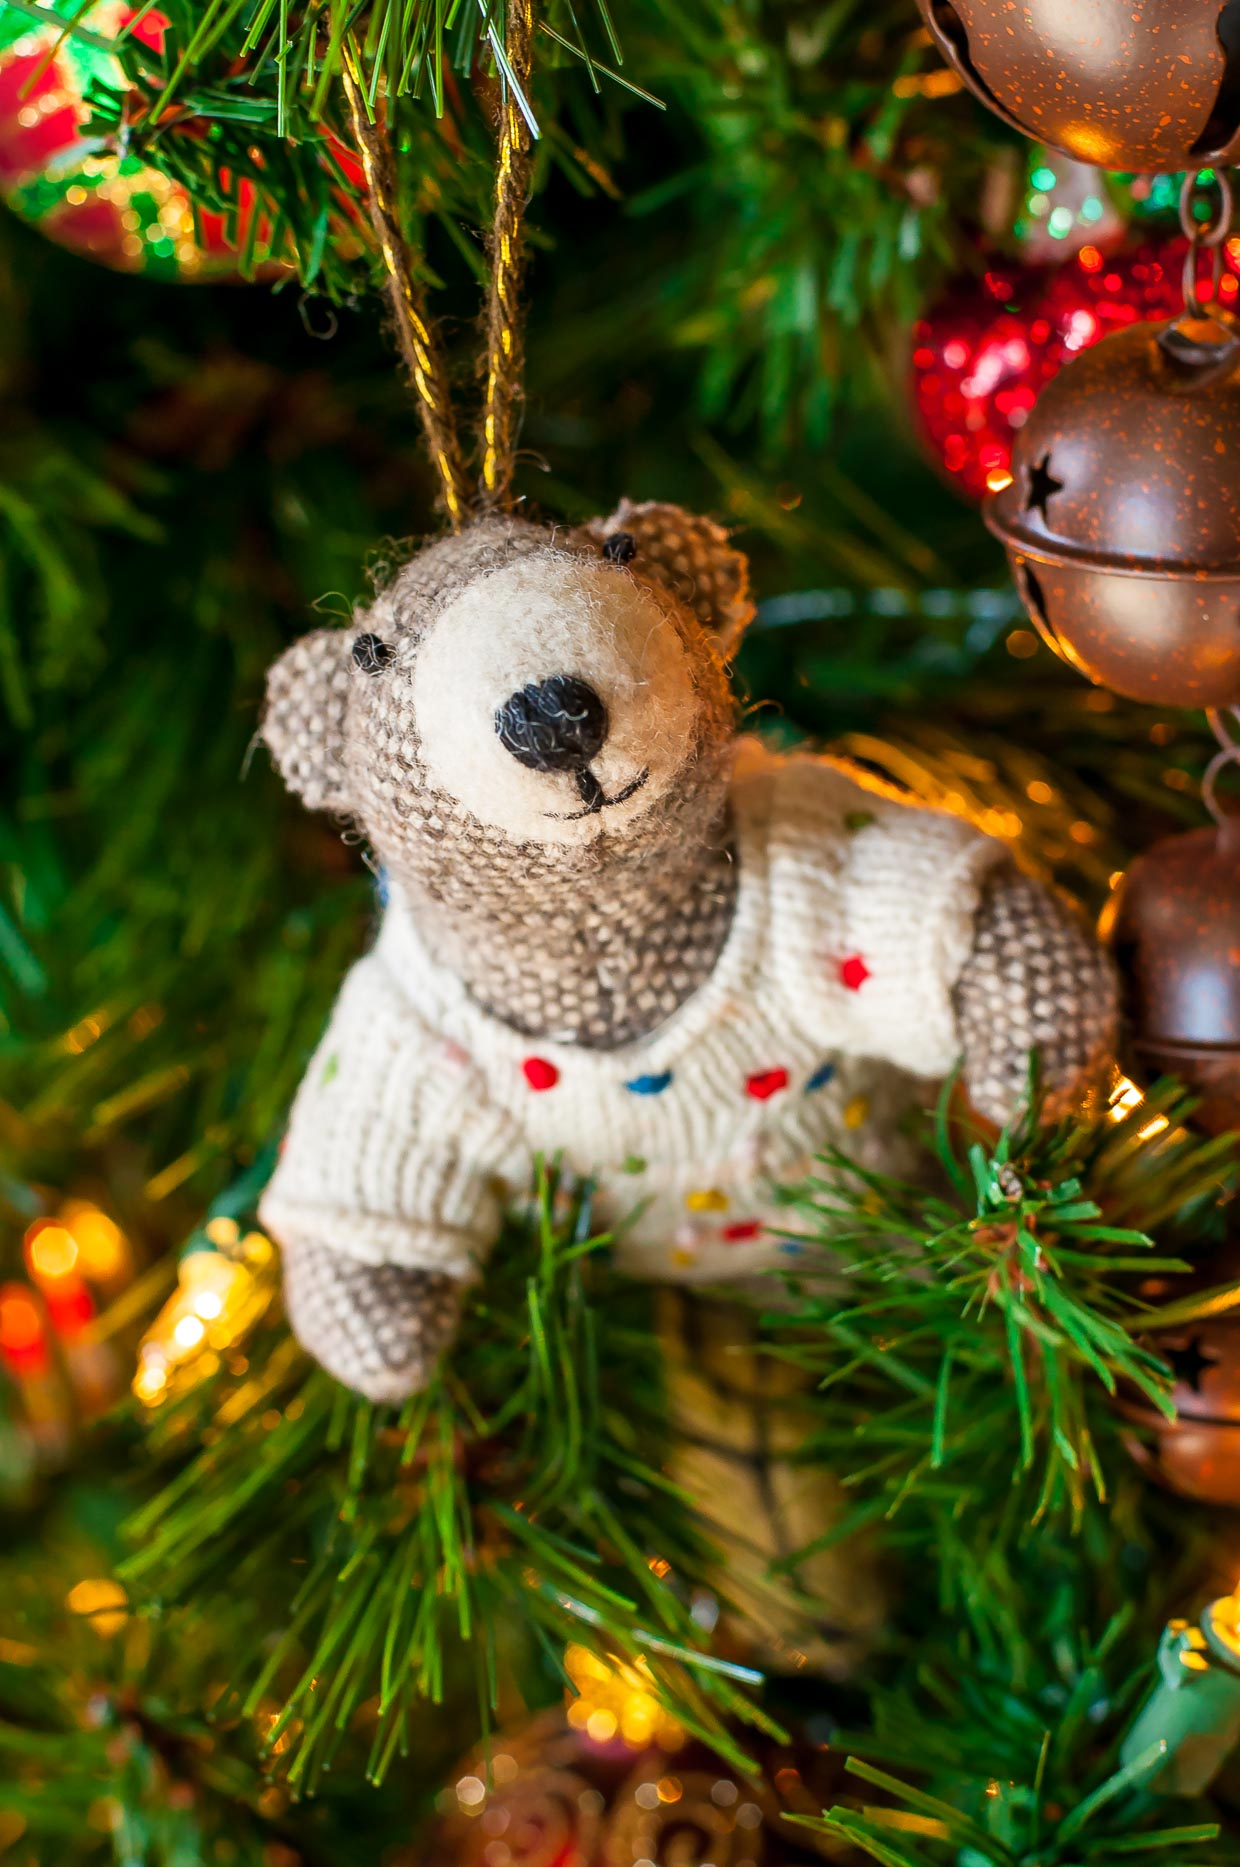 Christmas Tree-dition 2016: Our family's favorite holiday tradition - Bear Ornament